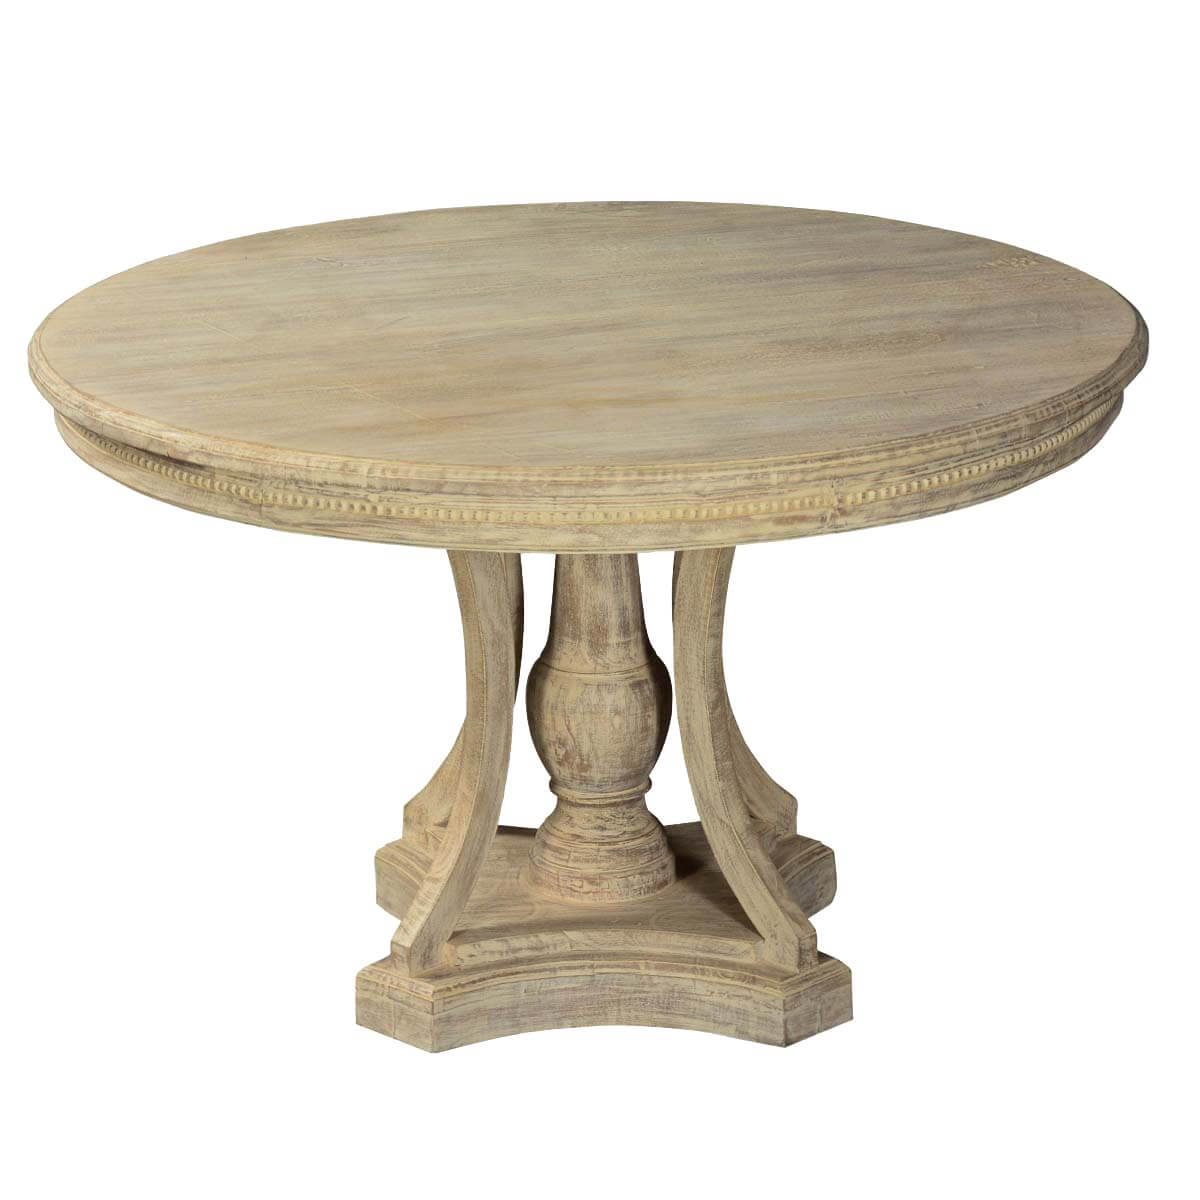 whitewashed mango wood 47 round pedestal dining table. Black Bedroom Furniture Sets. Home Design Ideas